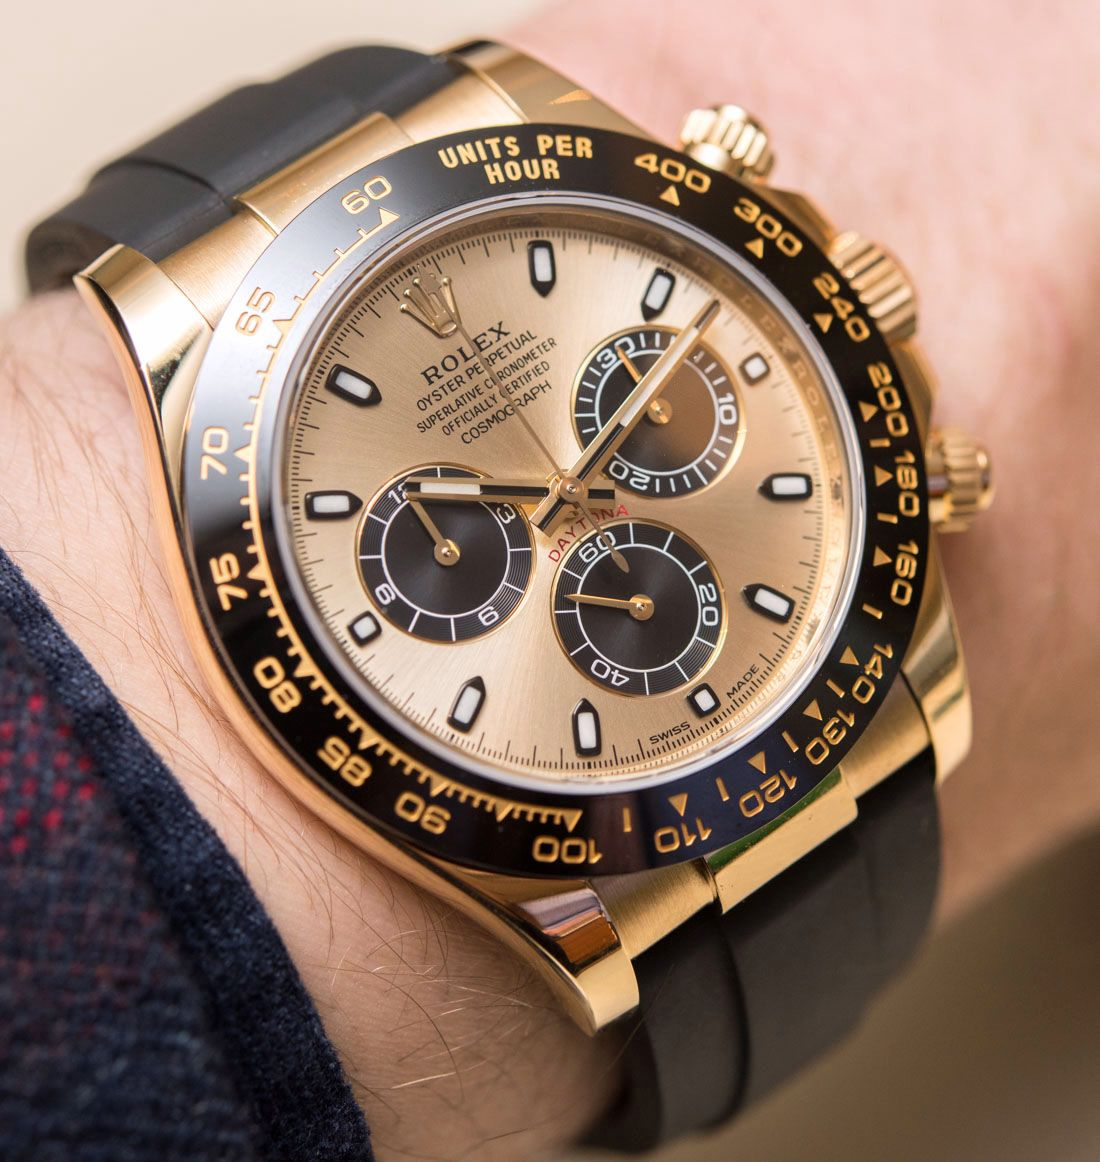 b6571809dc4 Rolex Cosmograph Daytona Watches In Gold With Oysterflex Rubber Strap    Ceramic Bezel Hands-On Hands-On